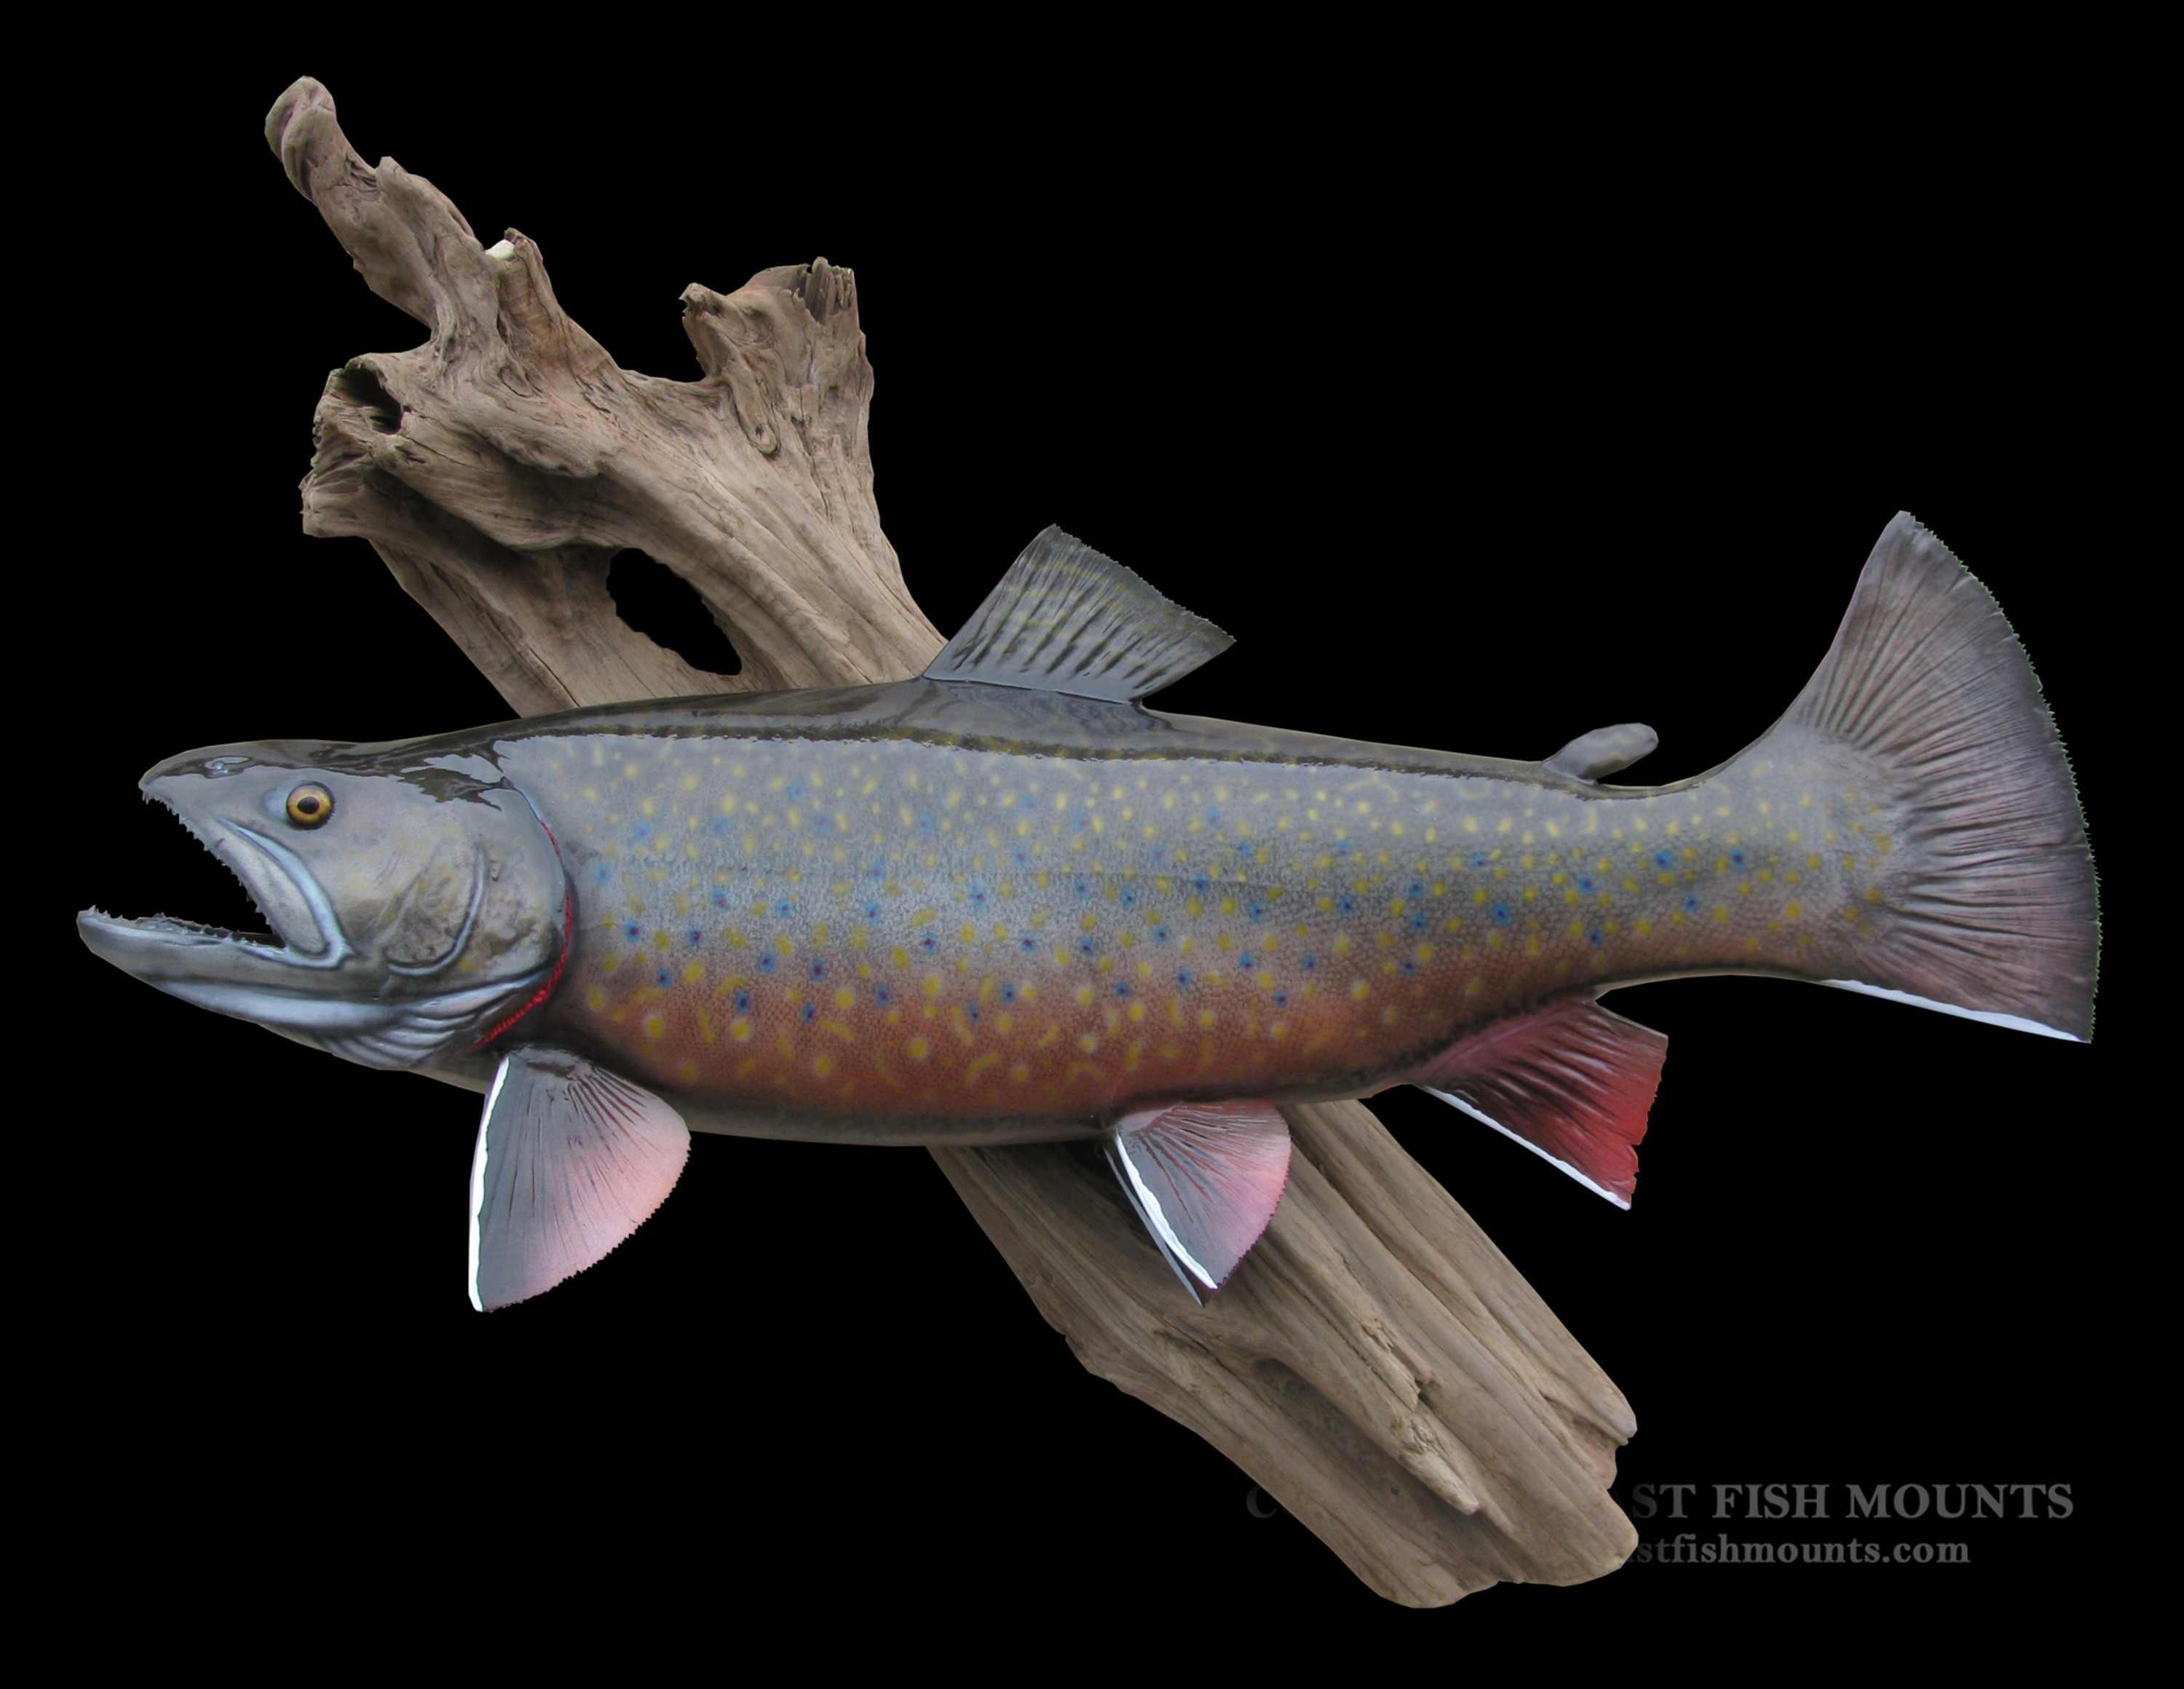 brook trout fish mount and fish replicas coast to coast